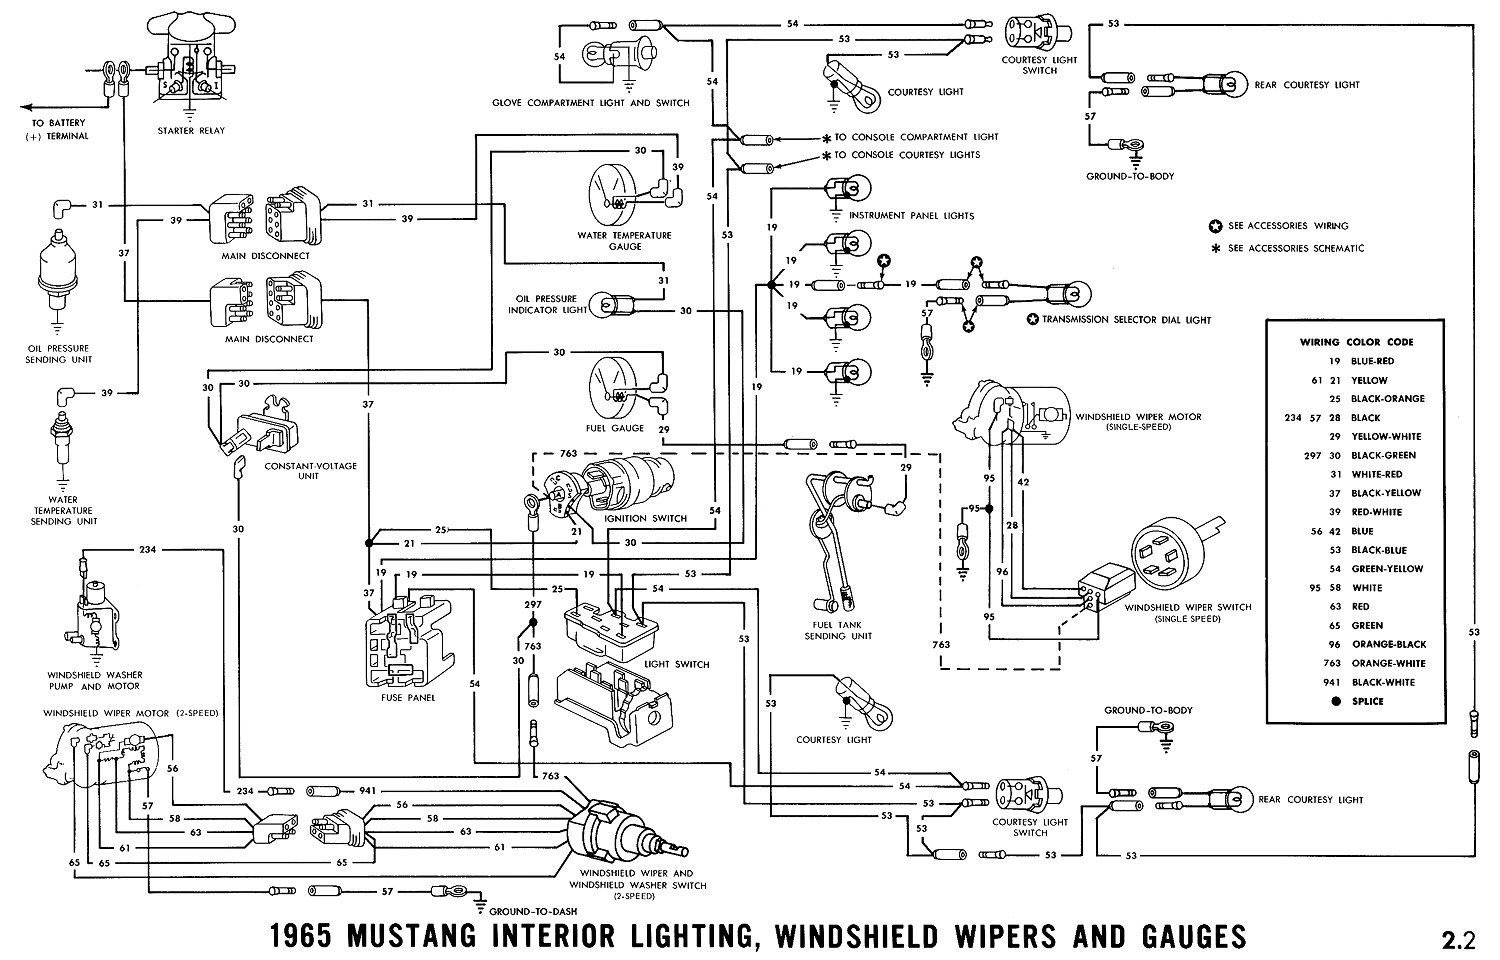 1965 mustang wiring diagrams average joe restoration 1999 mercury cougar  fuse location 1999 mercury cougar fuse box layout